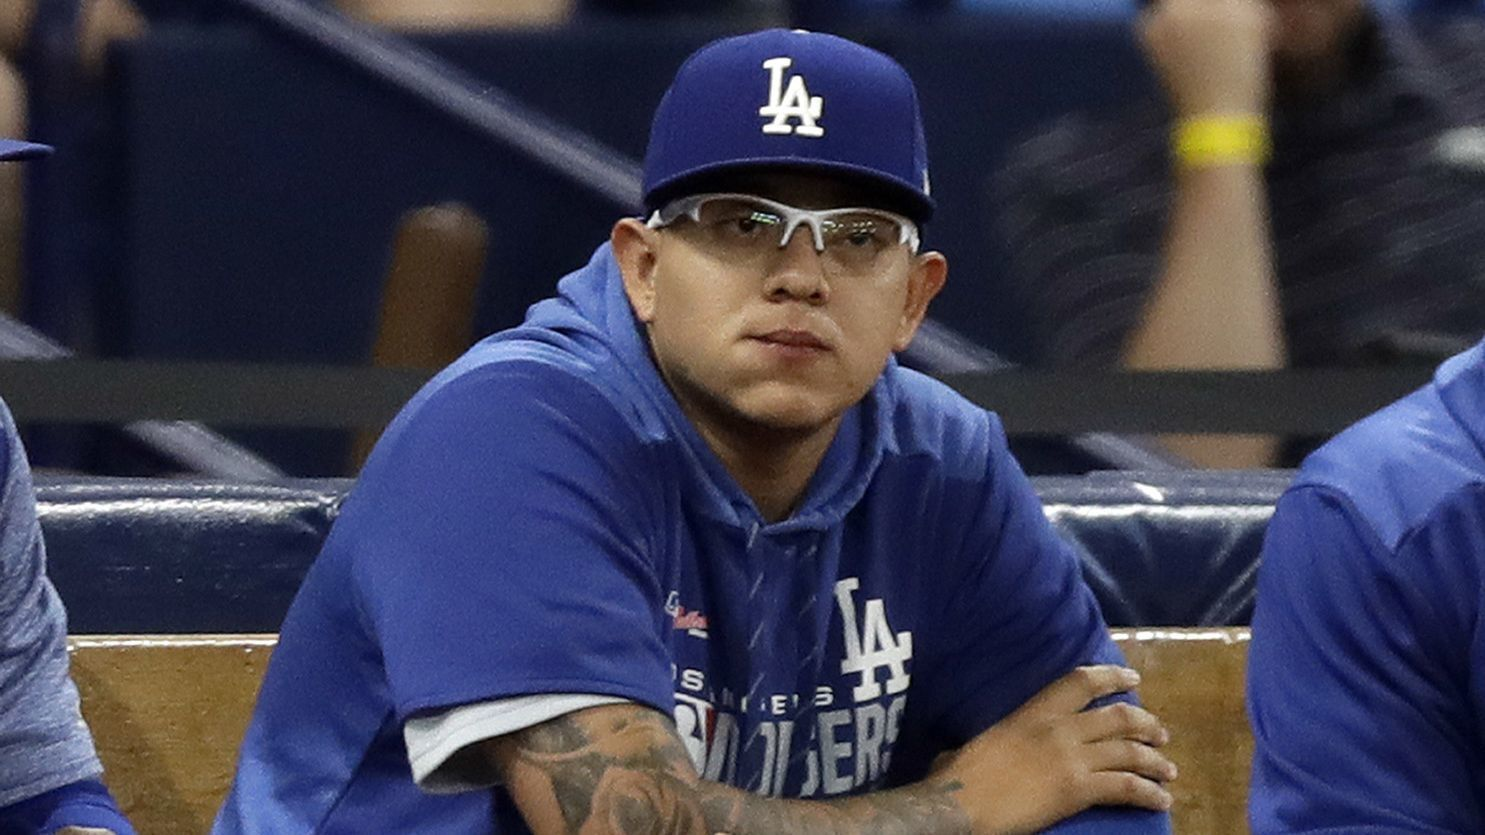 MLB suspends Julio Urias after domestic violence allegations